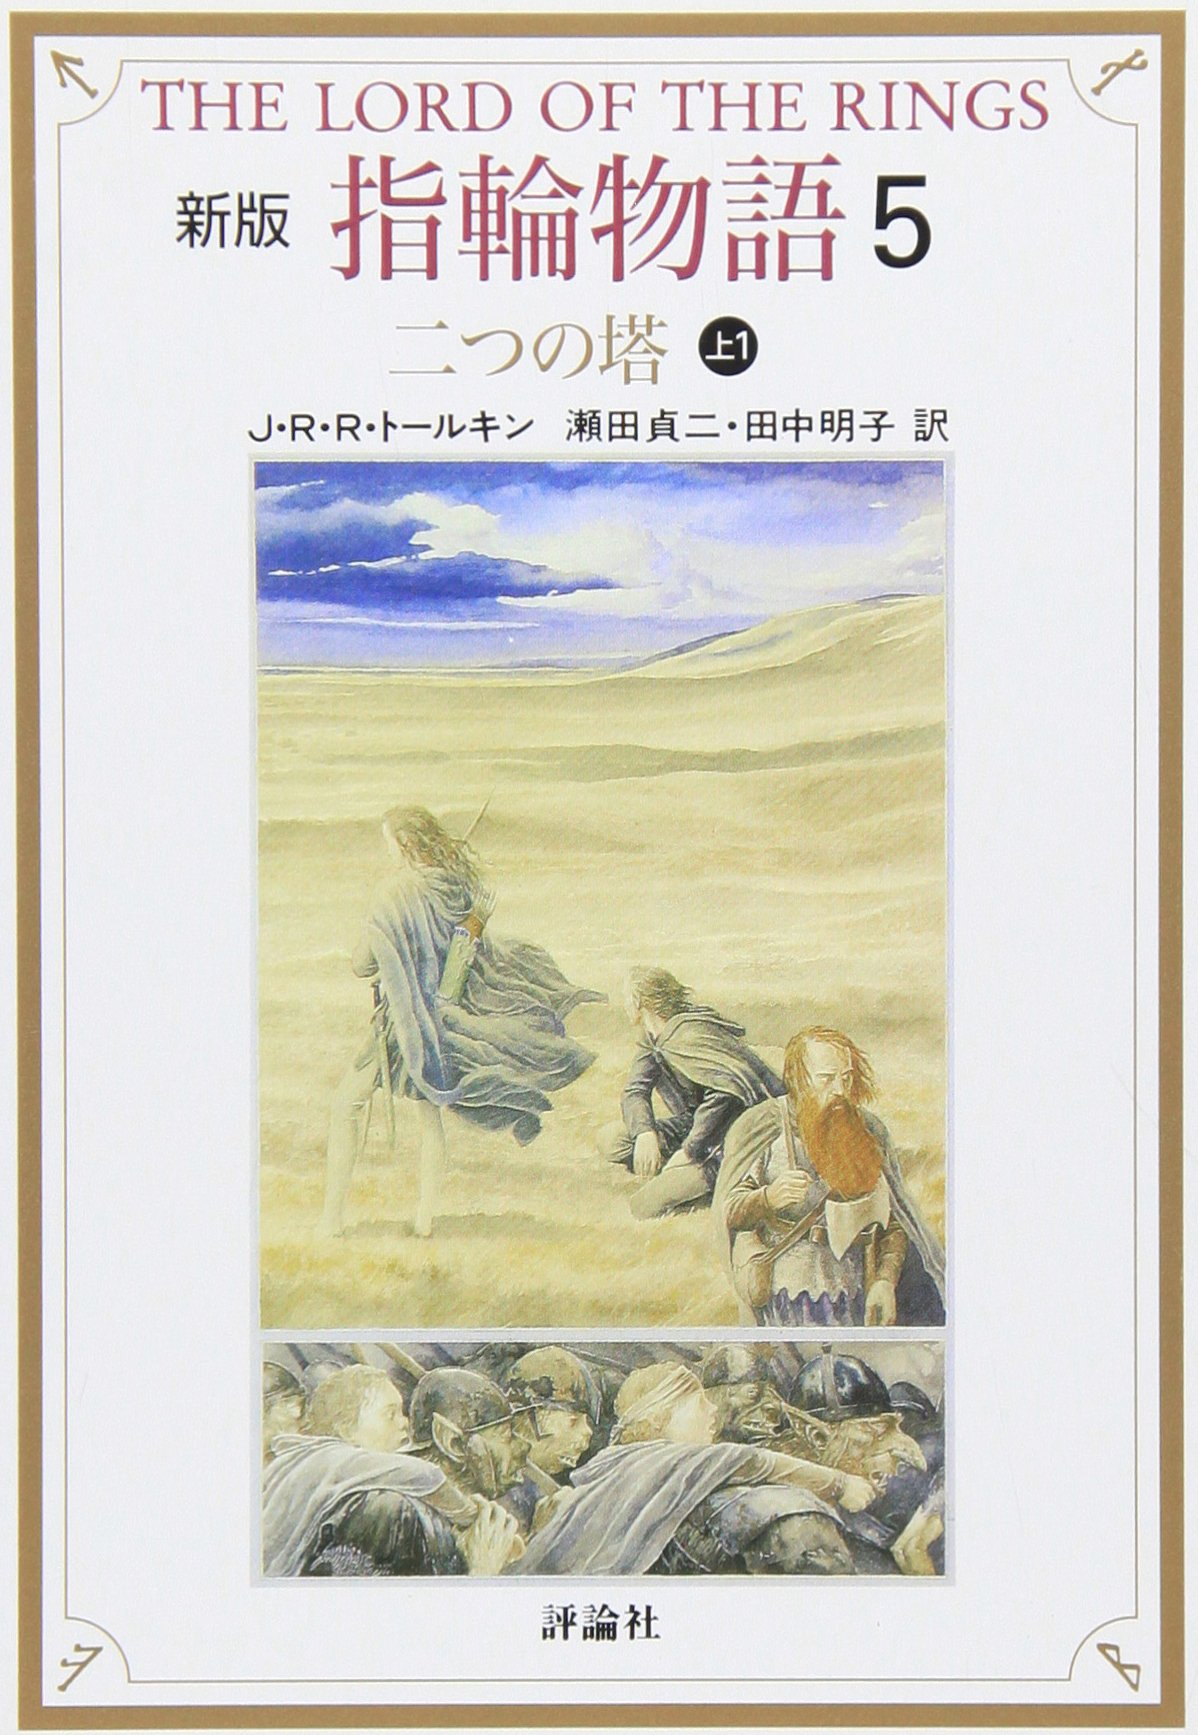 The Lord of the Rings: The Two Towers [In Japanese Language] (Volume 5)